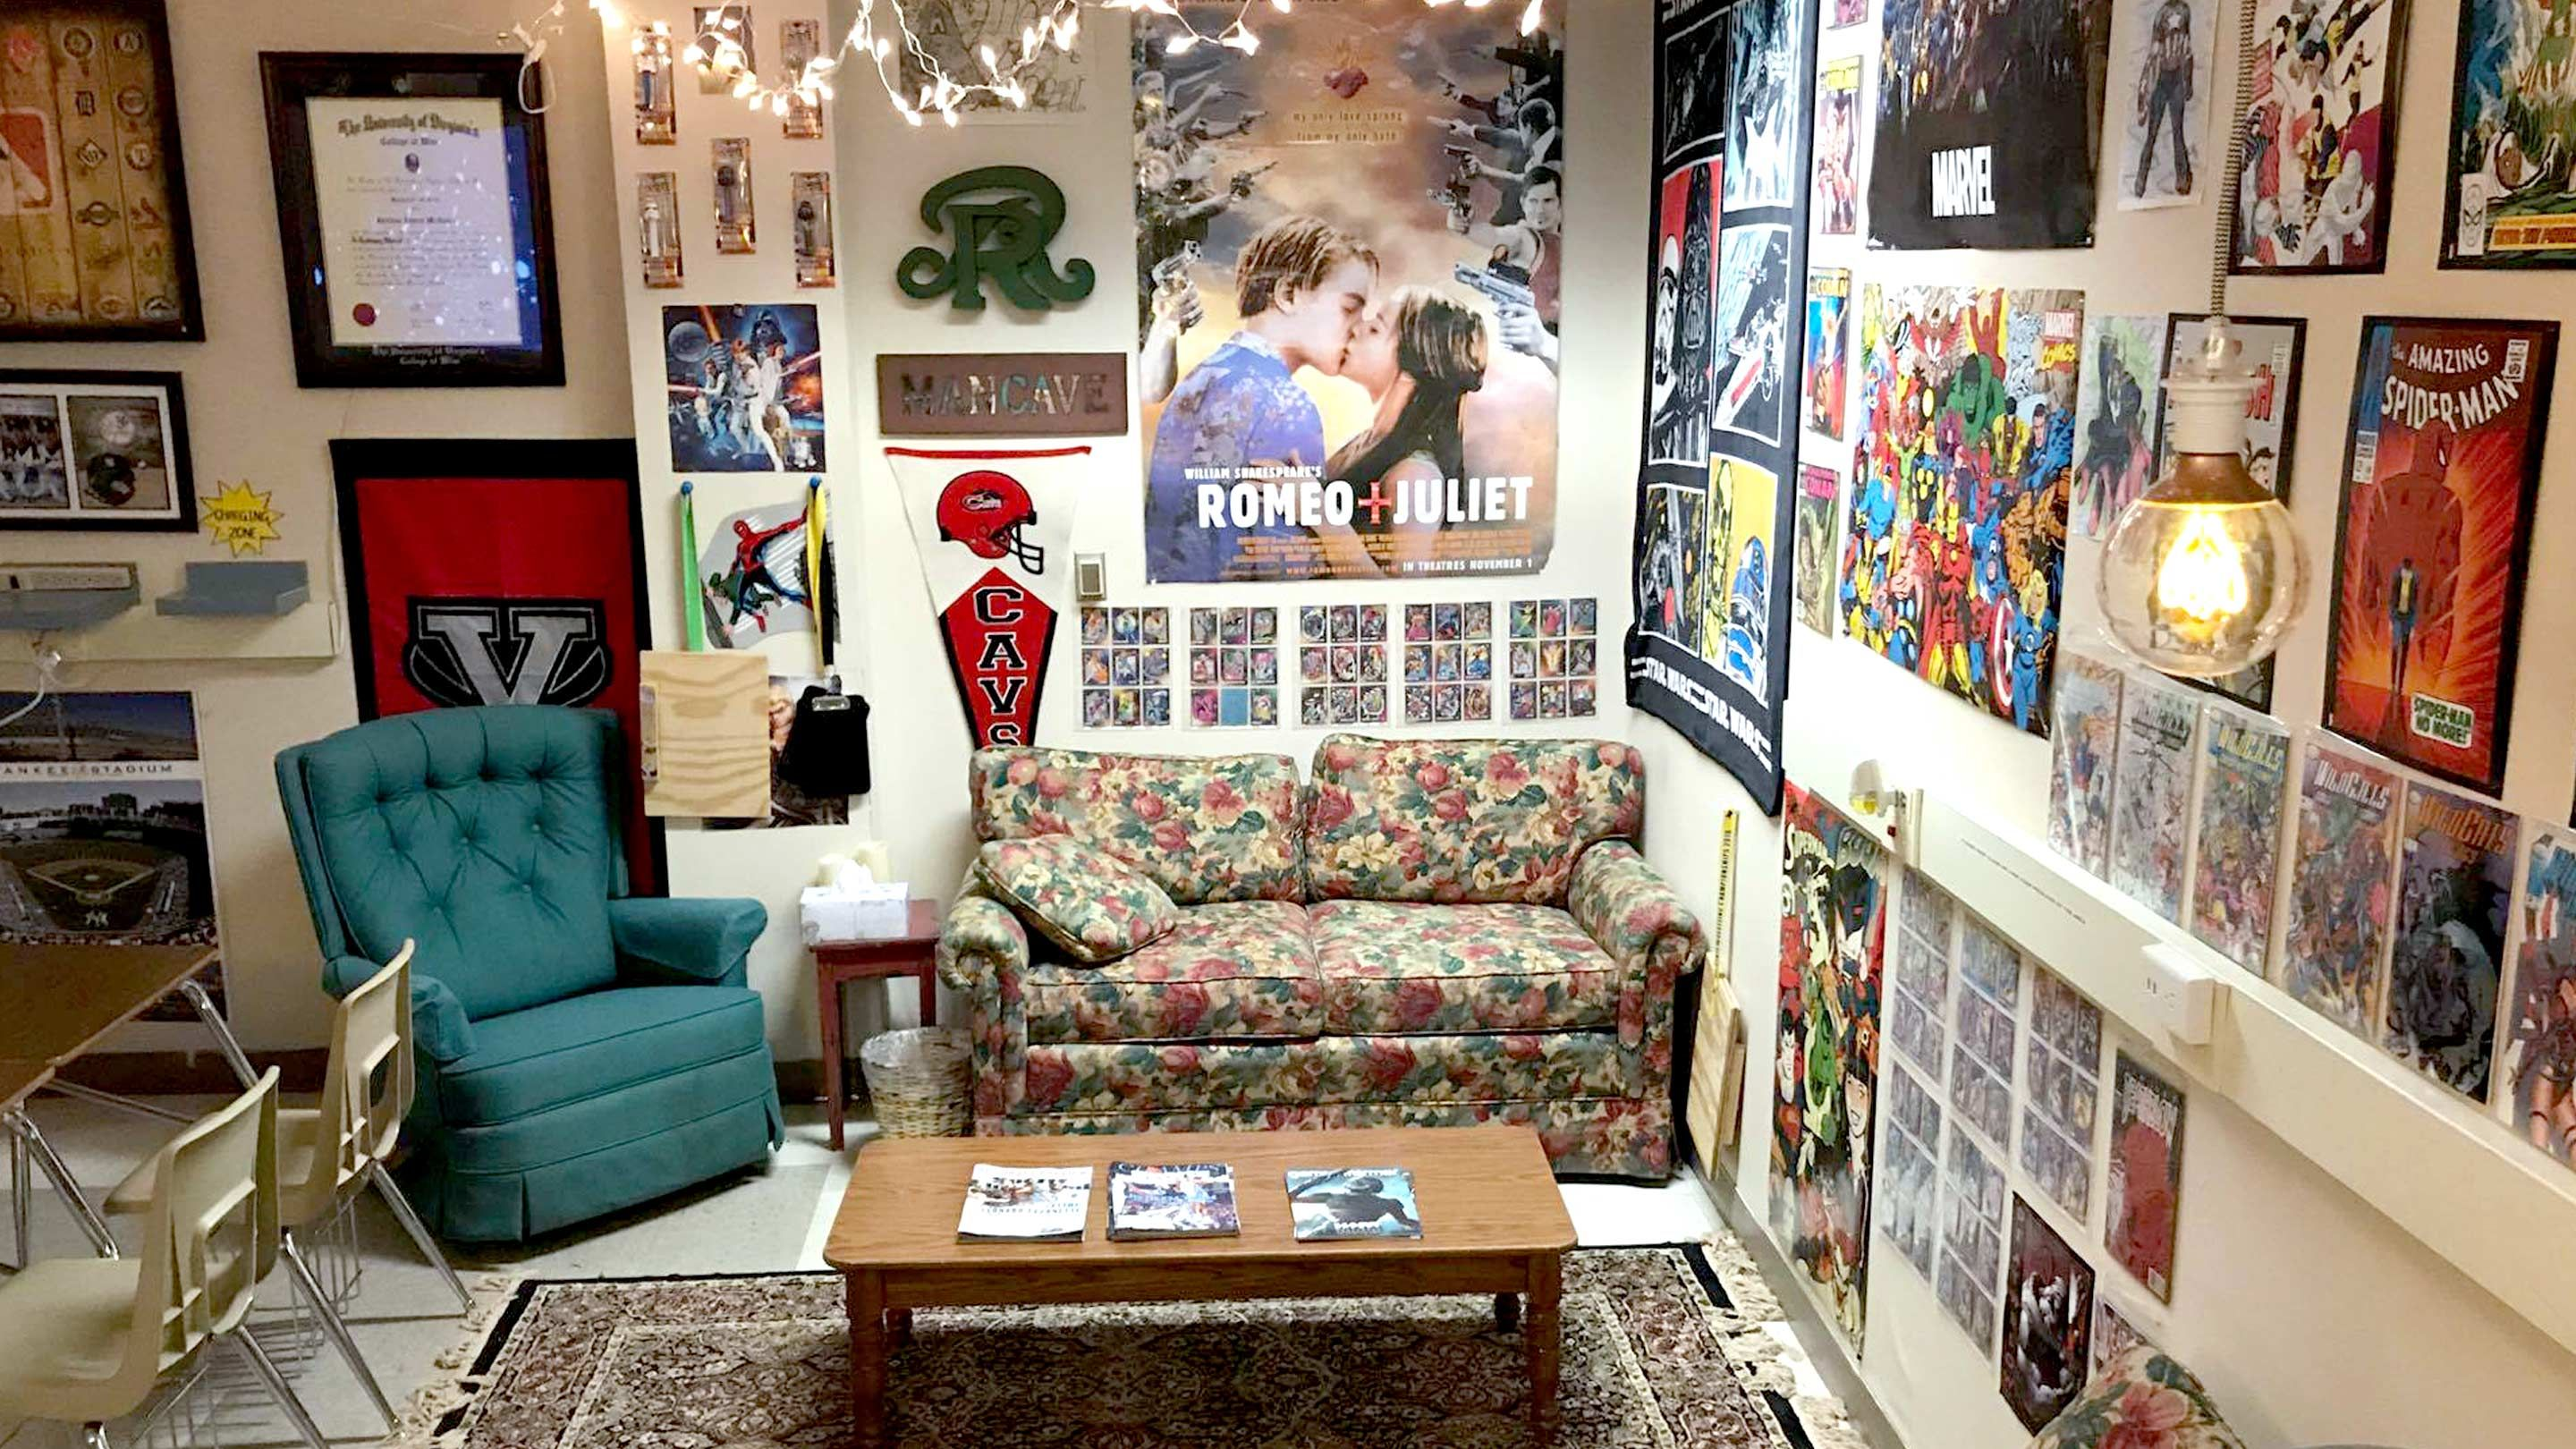 A classroom nook with a couch, armchair, and coffee table